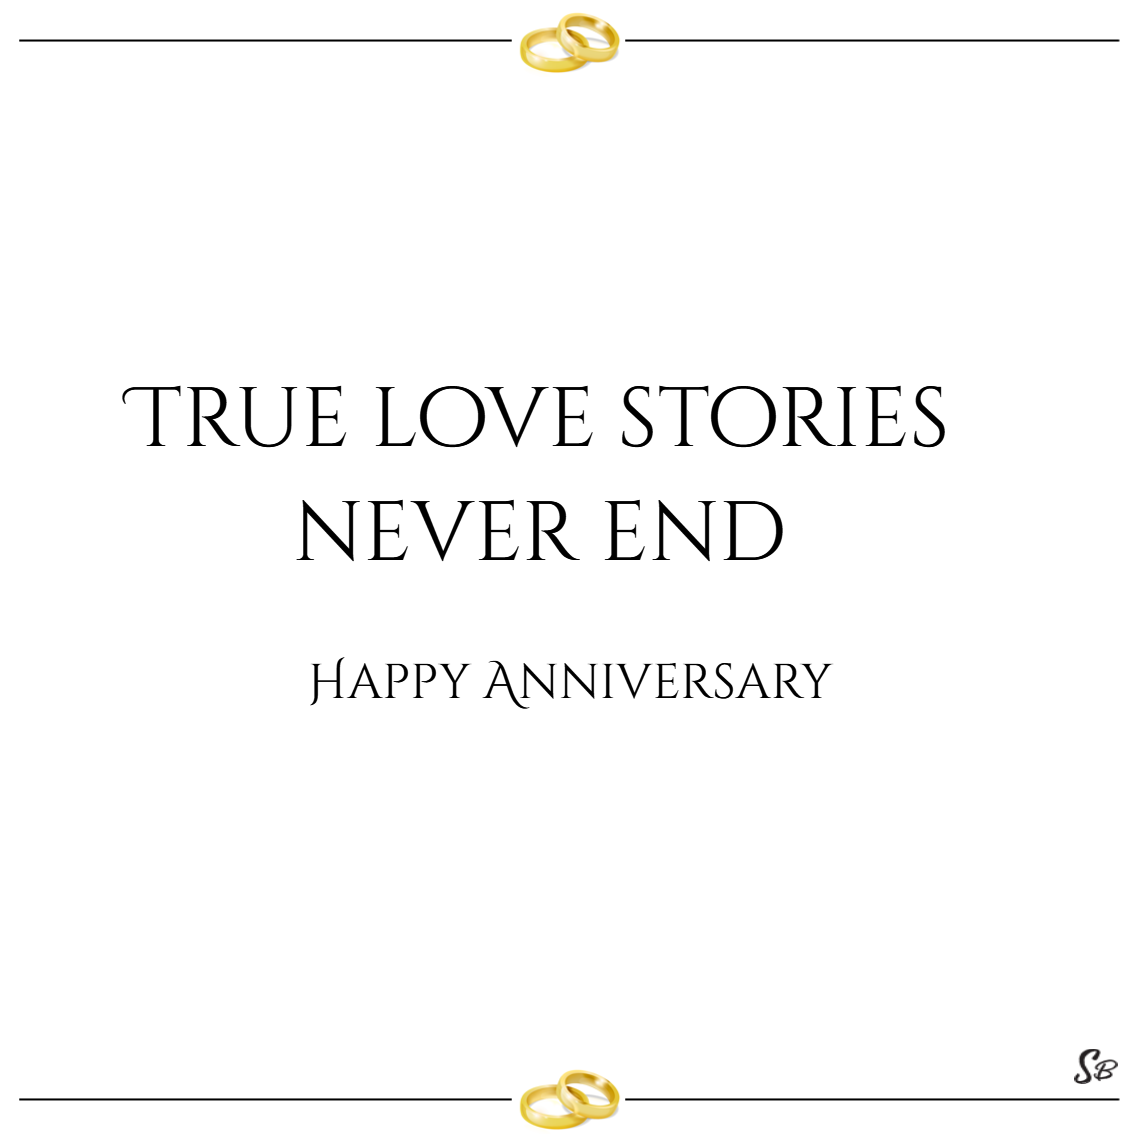 True love stories never end